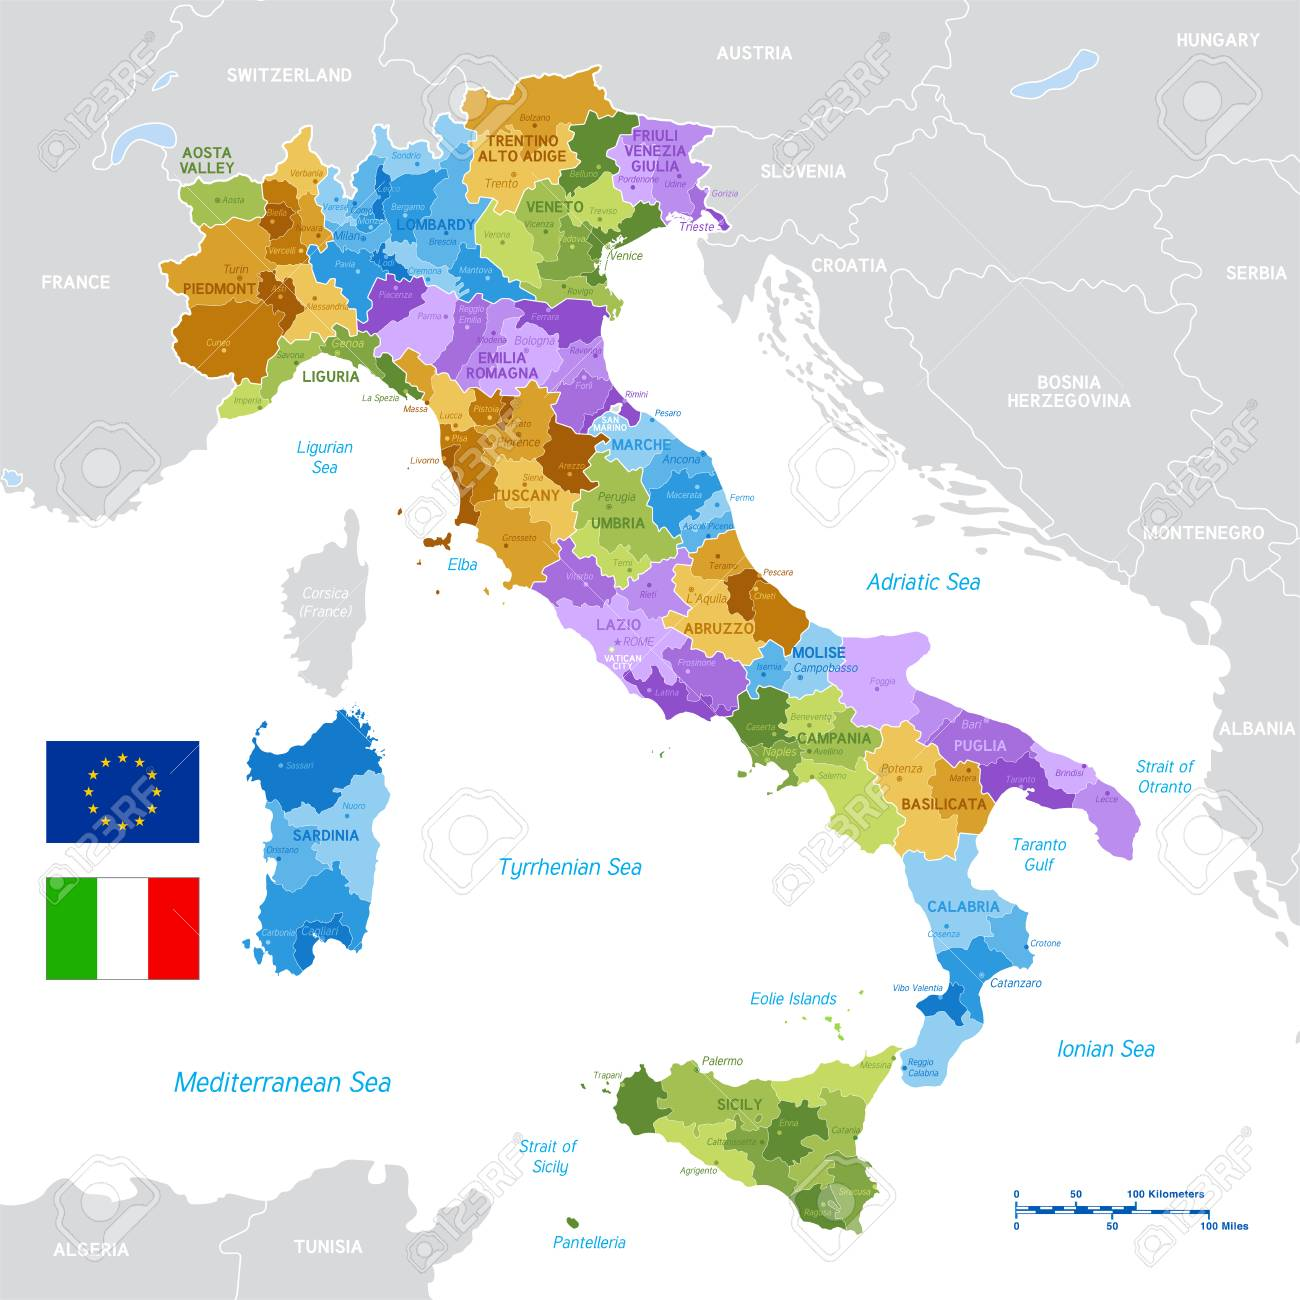 Vector Political Map of Italy with full Region and Provinces Boundaries, completed with Italian and EU flags. - 104653089